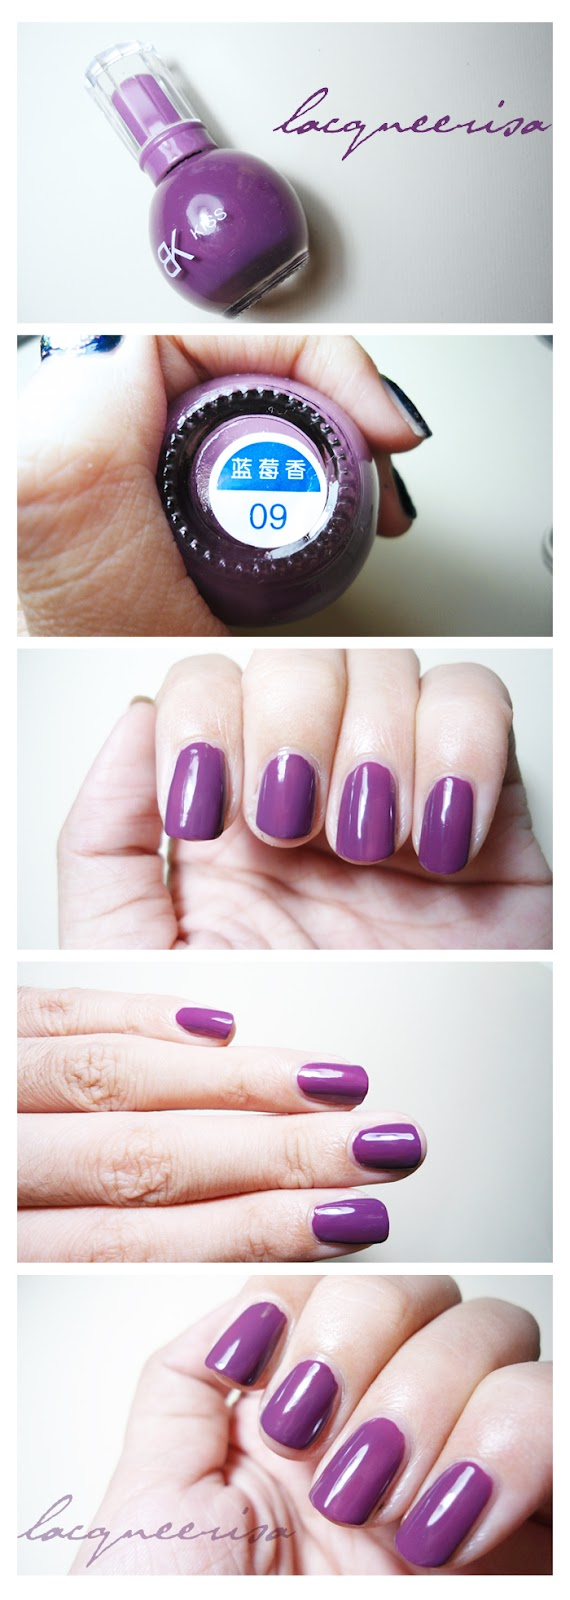 BeauKiss 09 Nail Polish Review